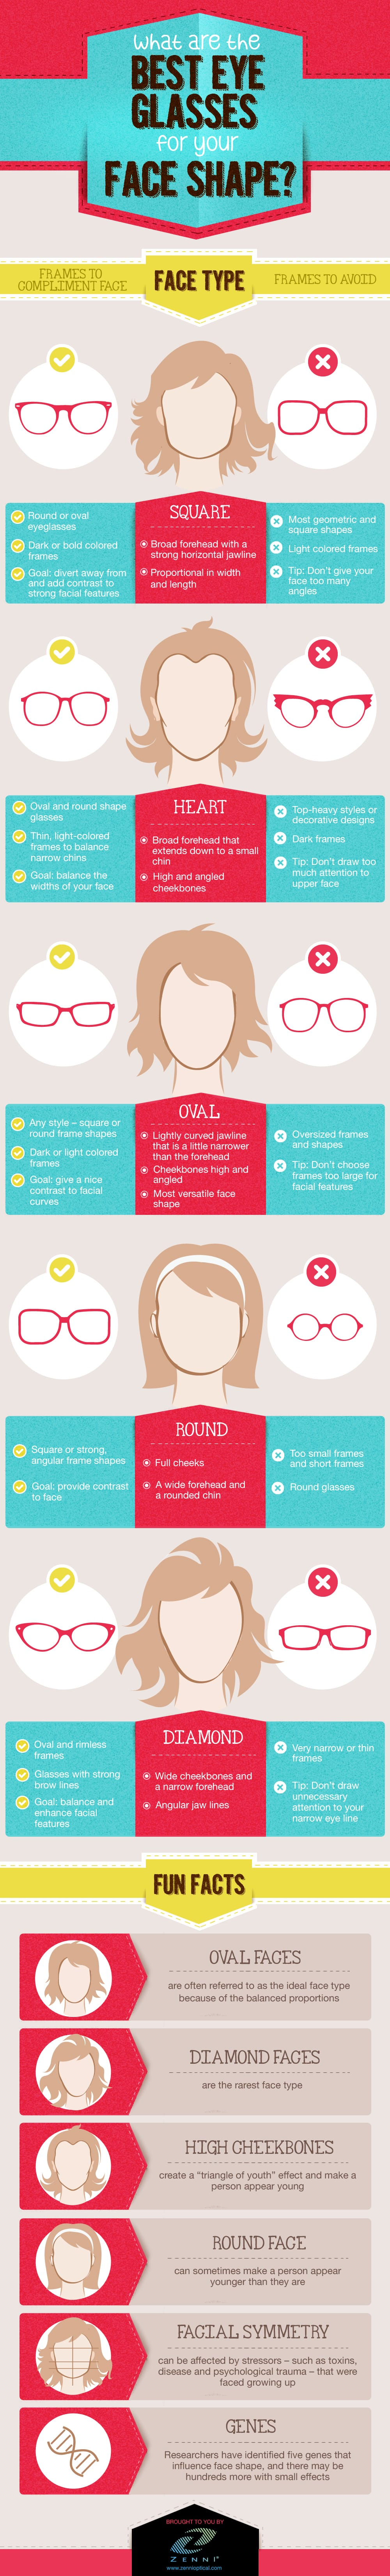 What are the Best Eyeglasses for Your Face Shape? - Blog ...